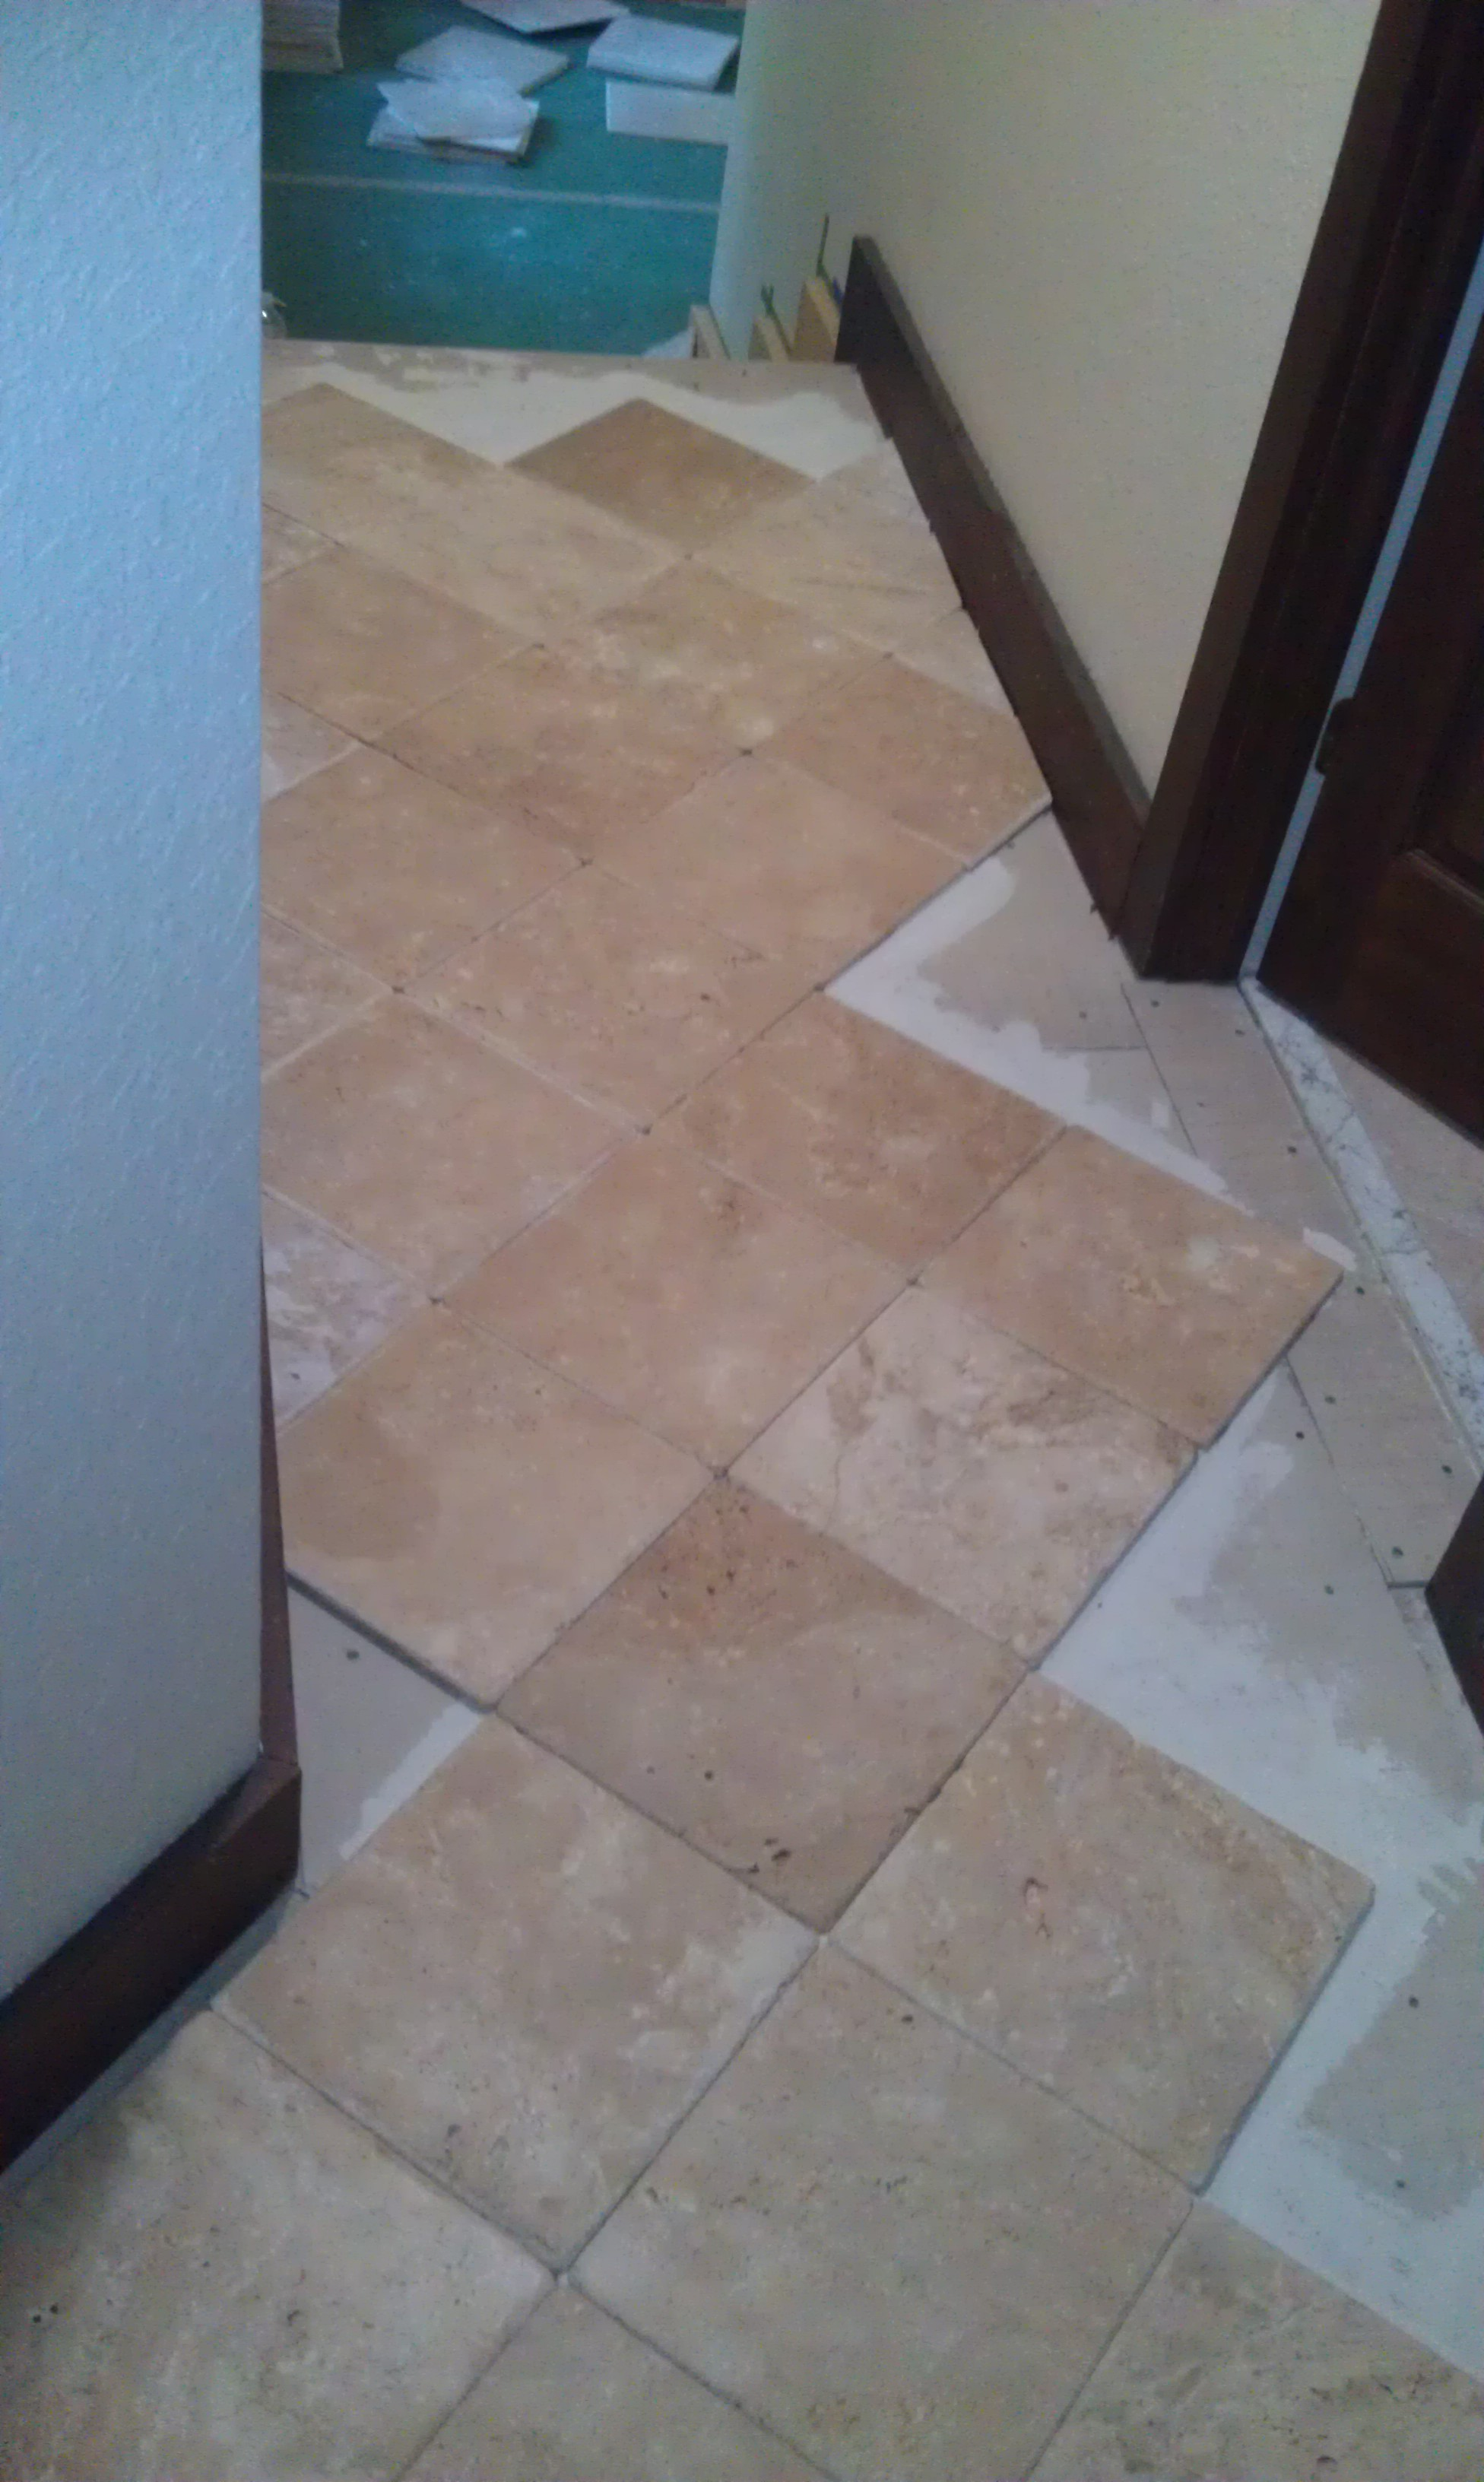 elegant kitchen floor versailles palatial and stone travertine of flooring chiesled edge pattern